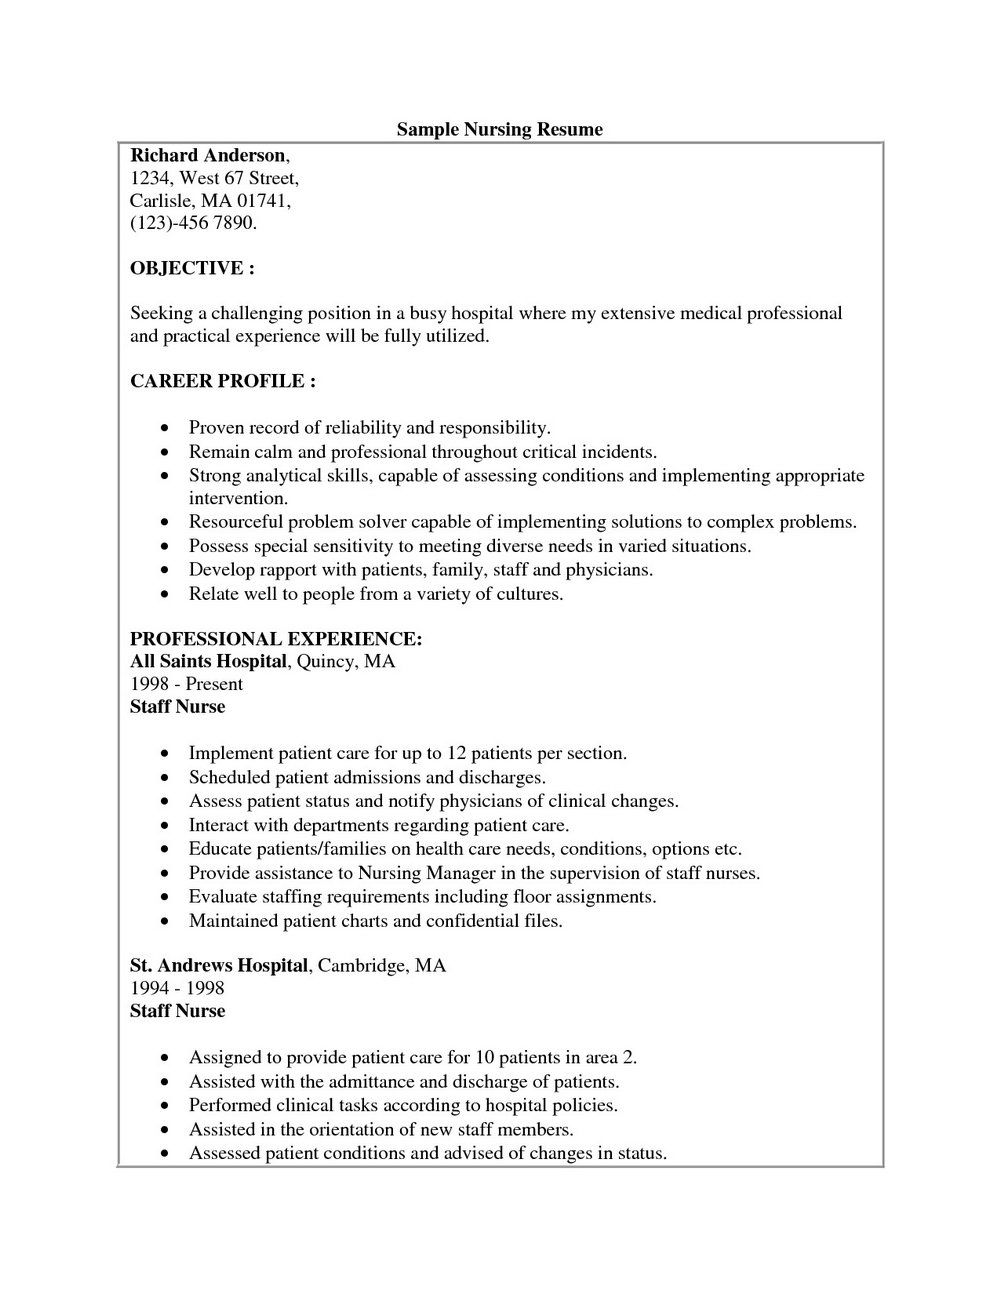 Free Nursing Resume Templates Microsoft Word